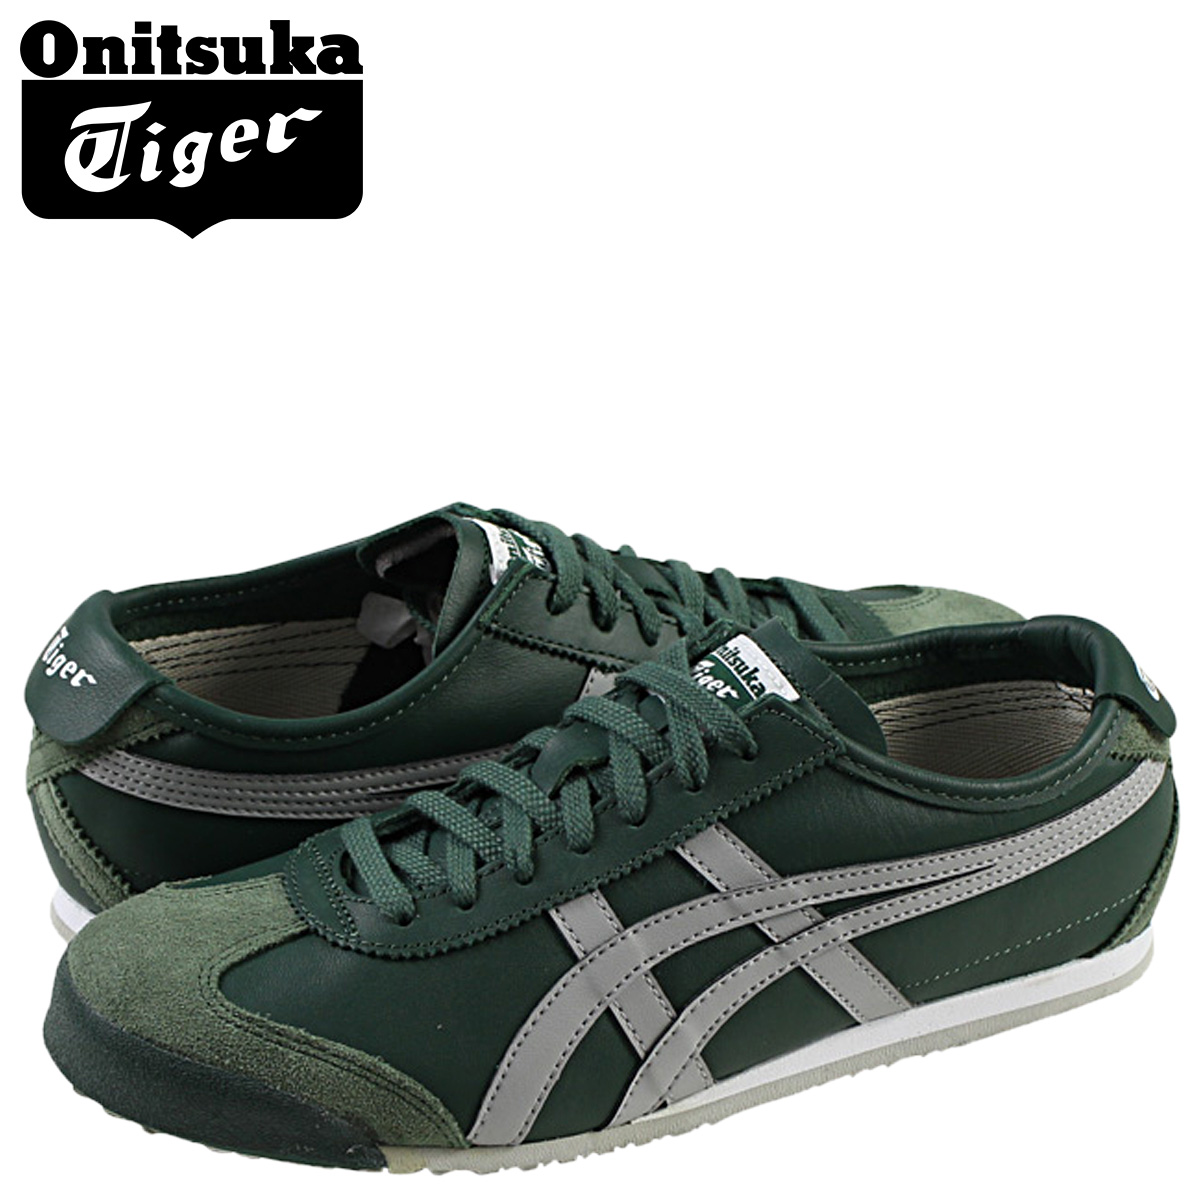 reputable site 5e37c 27d04 Onitsuka tiger ASICS Onitsuka Tiger asics Mexico 66 sneakers MEXICO 66  TH4J2L-8013 men gap Dis shoes green